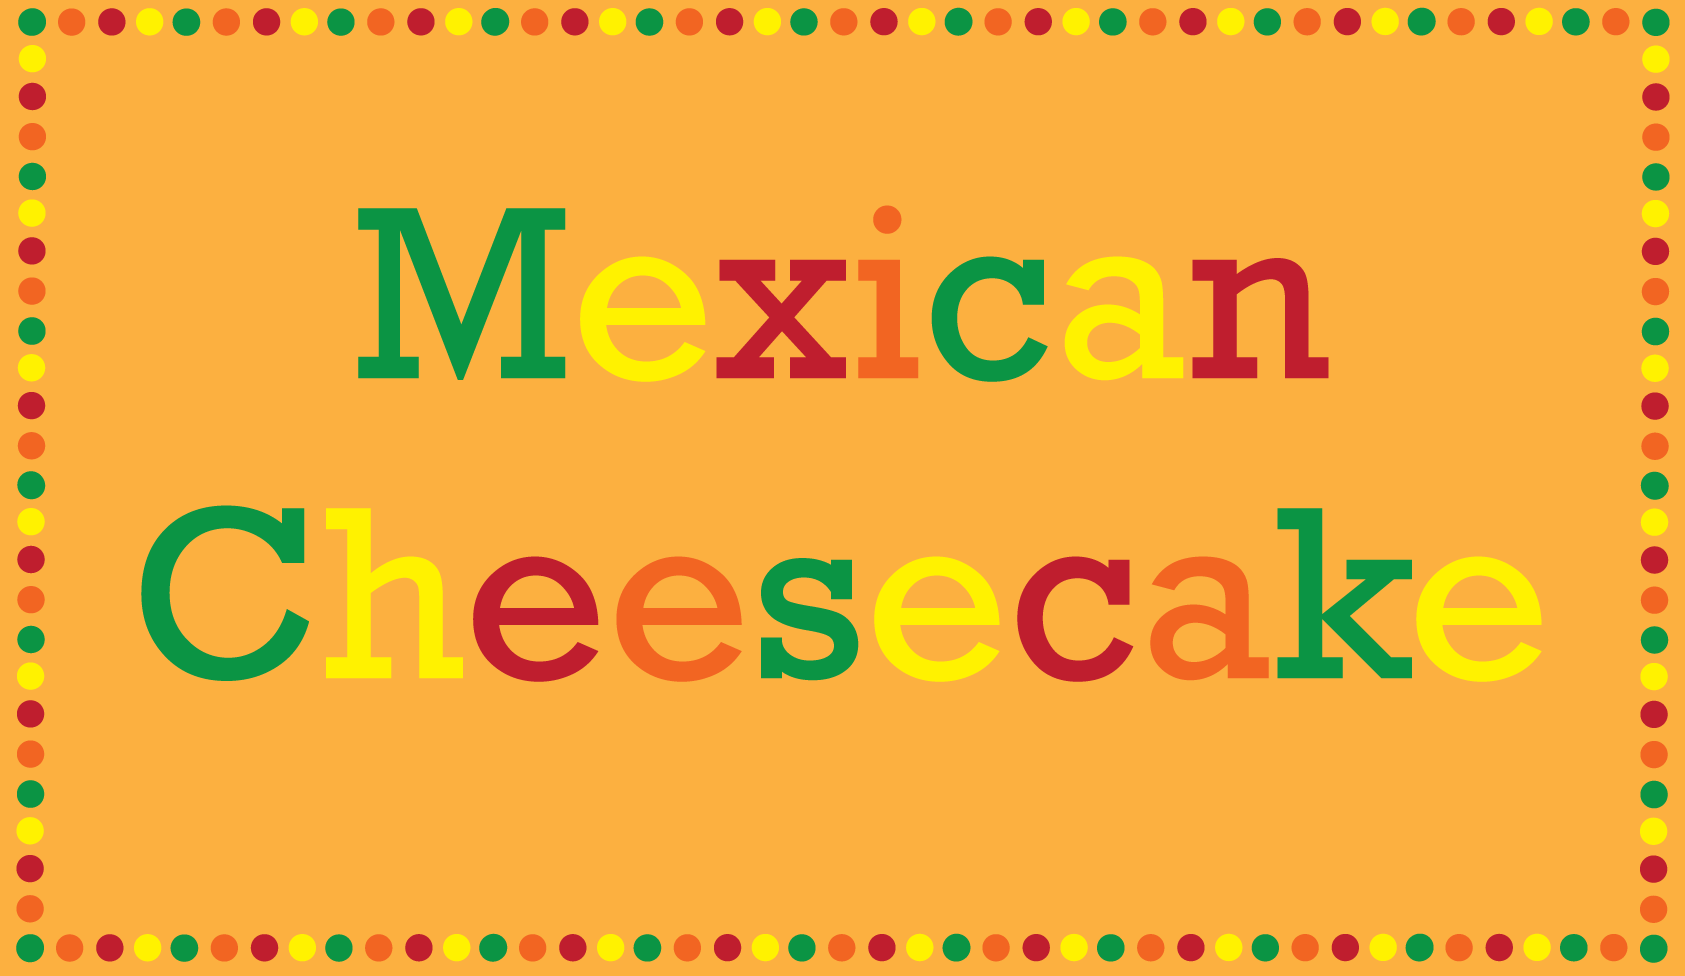 Mexican Cheesecake Graphic-01